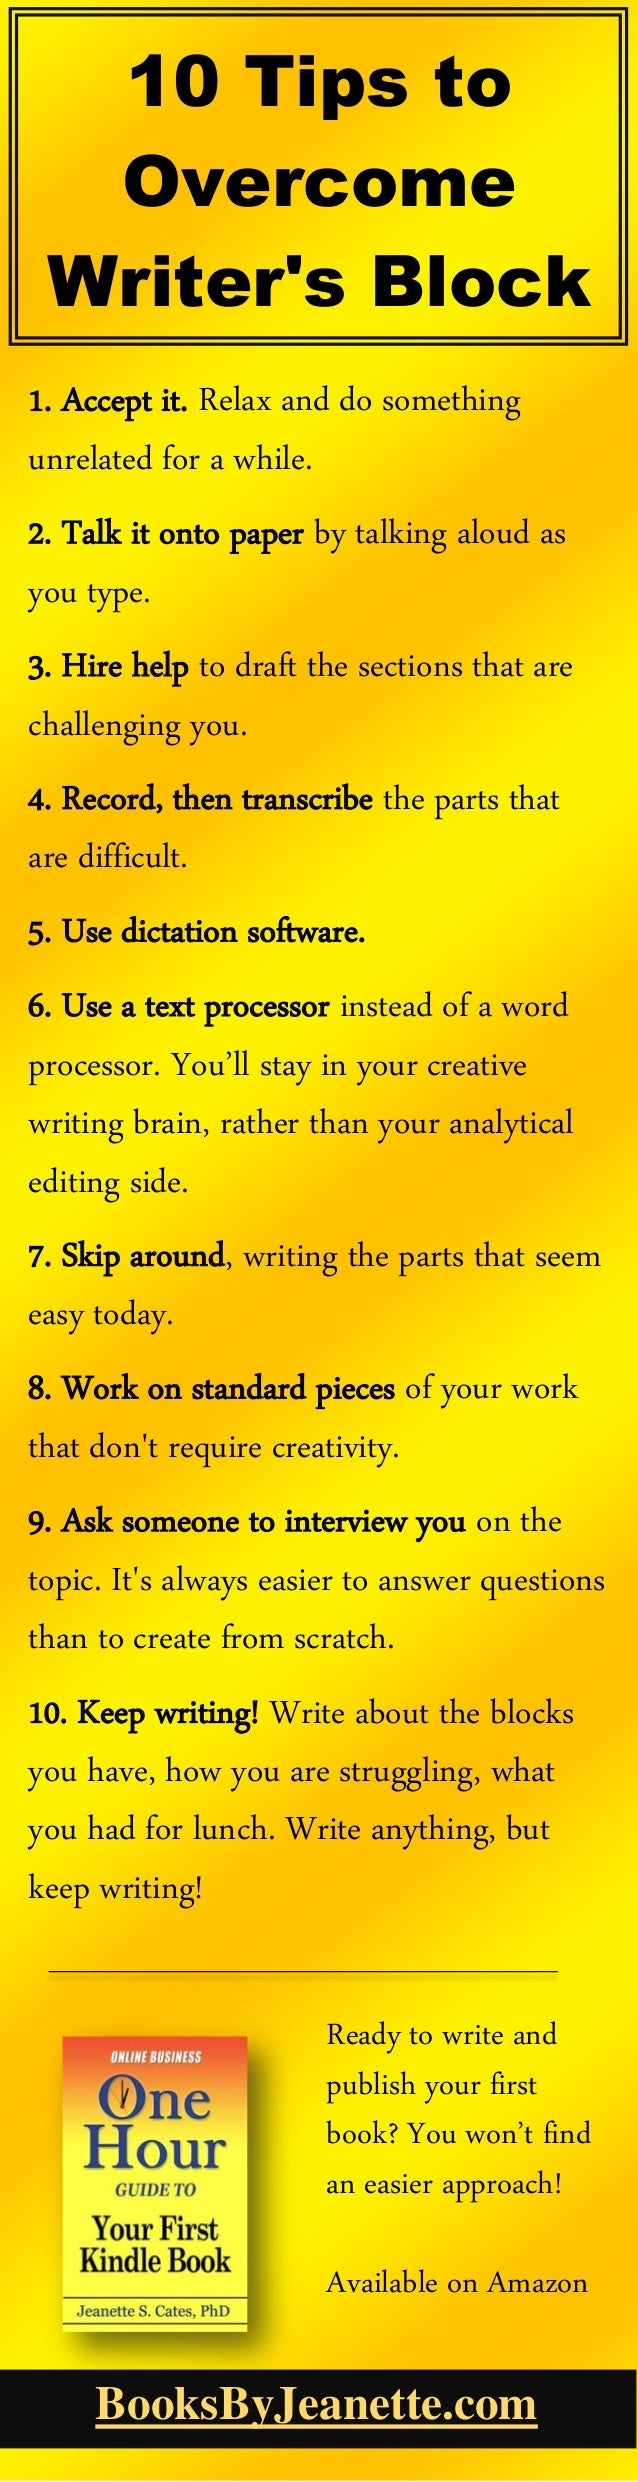 10 Tips to Overcome Writer's Block 1. Accept it. Relax and do something unrelated for a while. 2. Talk it onto paper by ta...